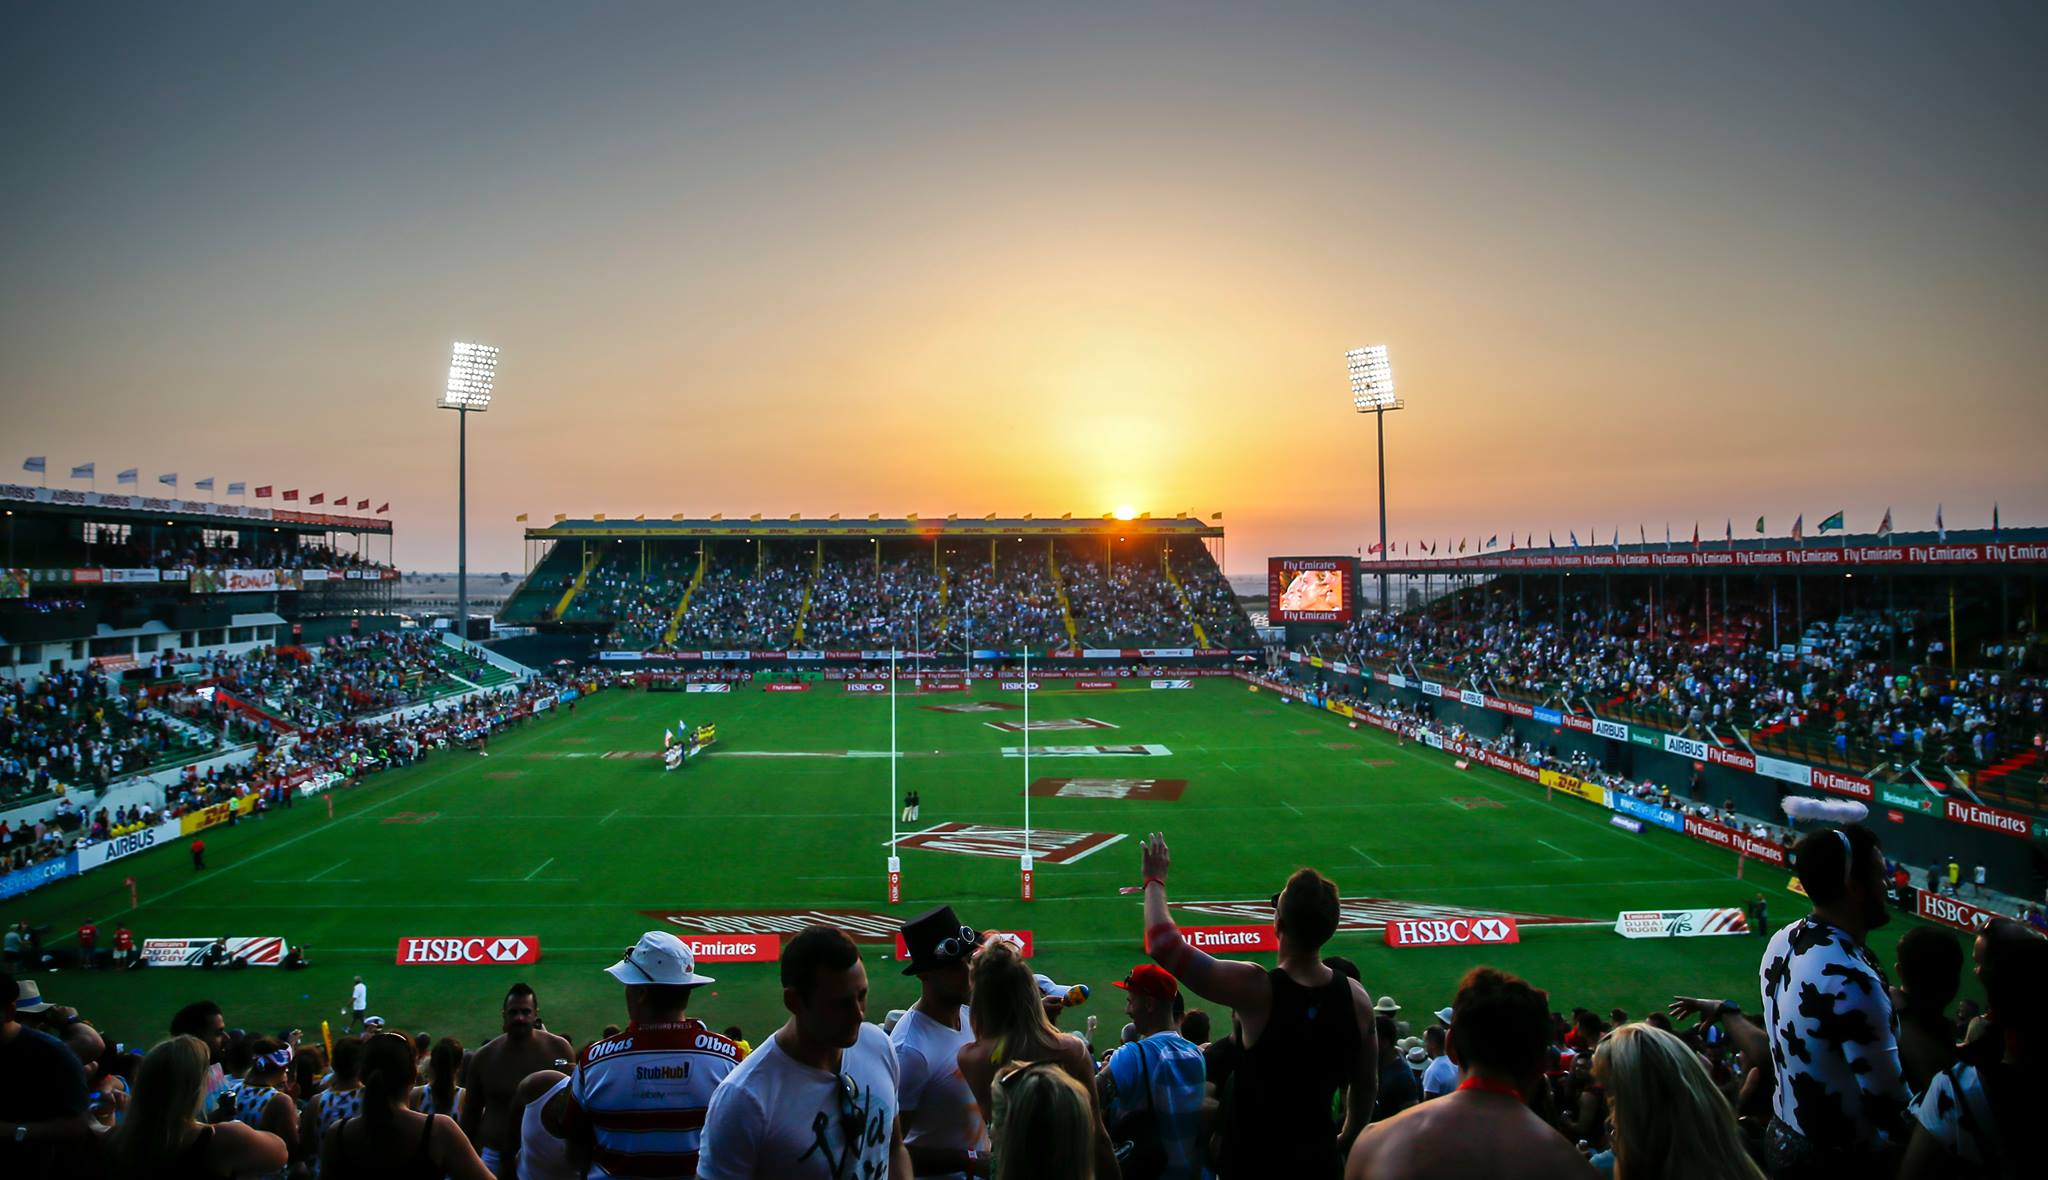 The Dubai Rugby Sevens Dates Back To 1970 Making It A Dubai Fixture For Almost 50 Years Held At The Sevens Stadium This Thrilling Tournament Is Perhaps